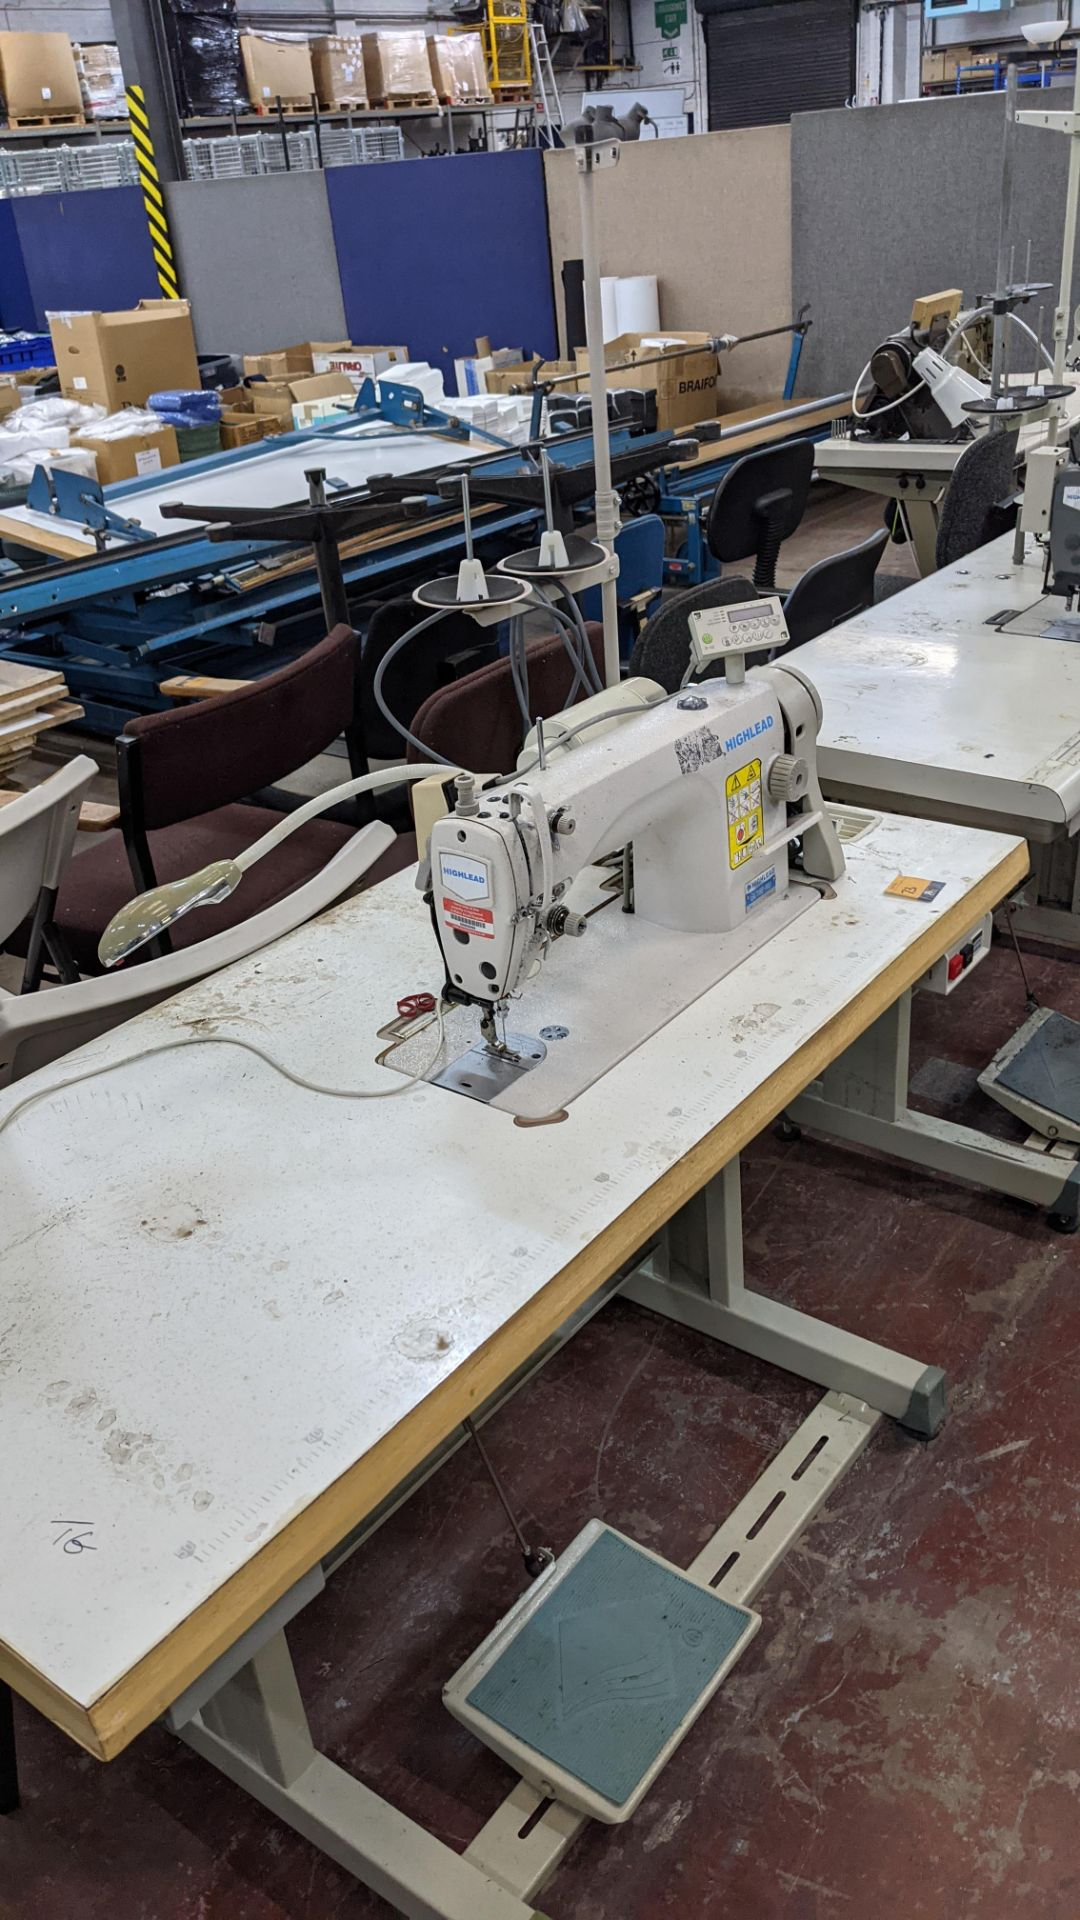 Highlead model GC188-MD sewing machine with model F-10 digital controller - Image 13 of 16